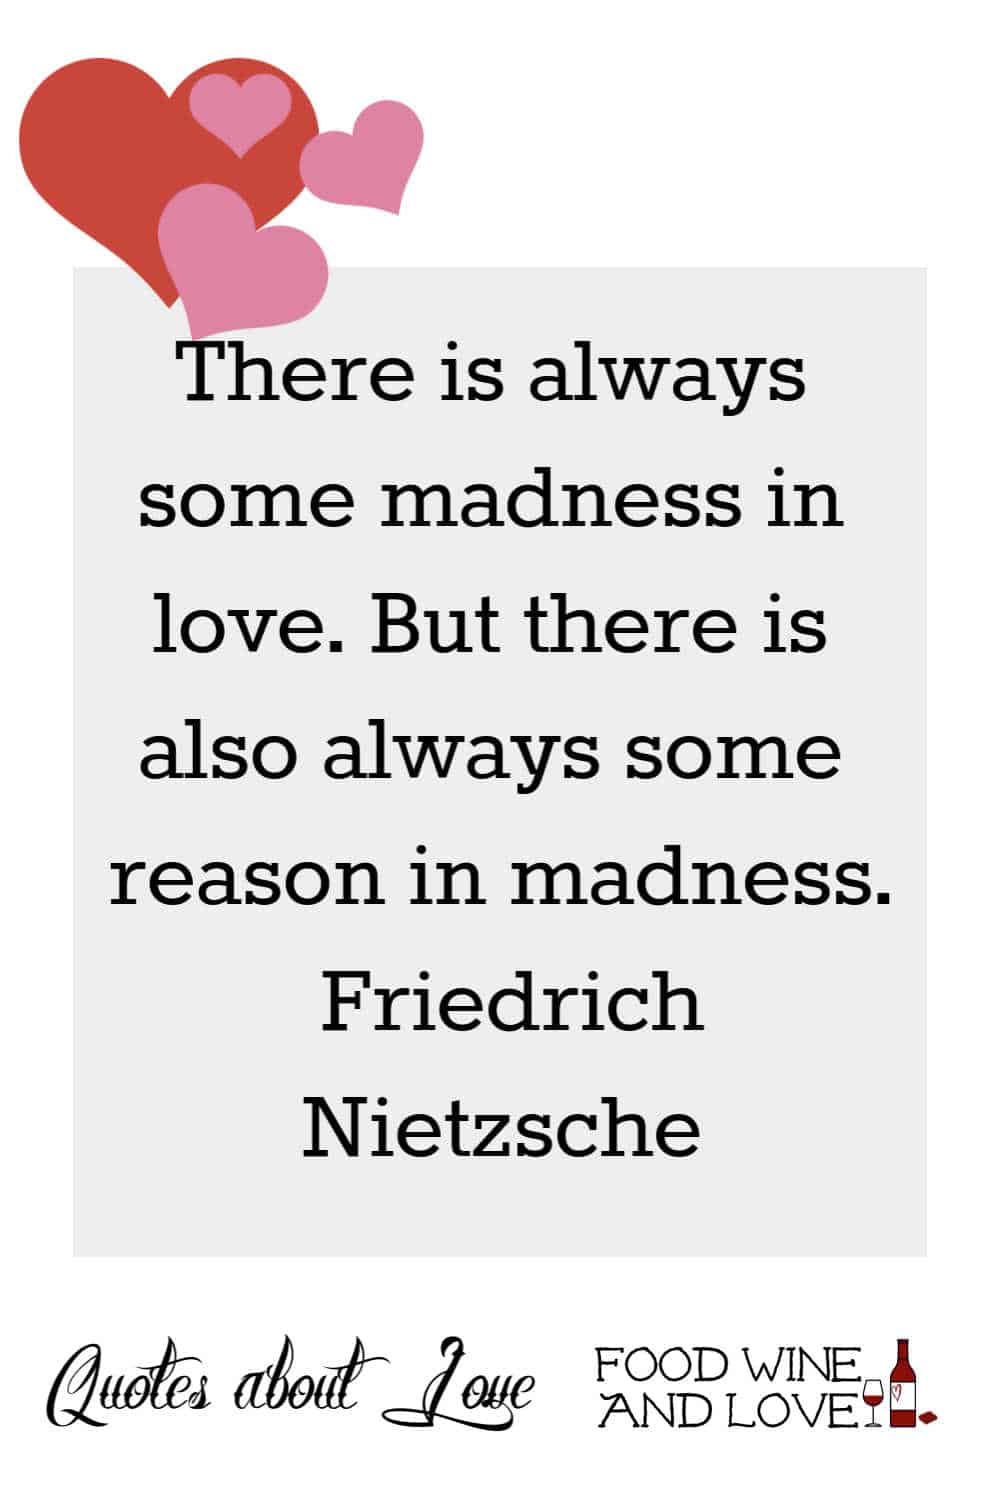 There is always some madness in love. But there is also always some reason in madness.   Friedrich Nietzsche